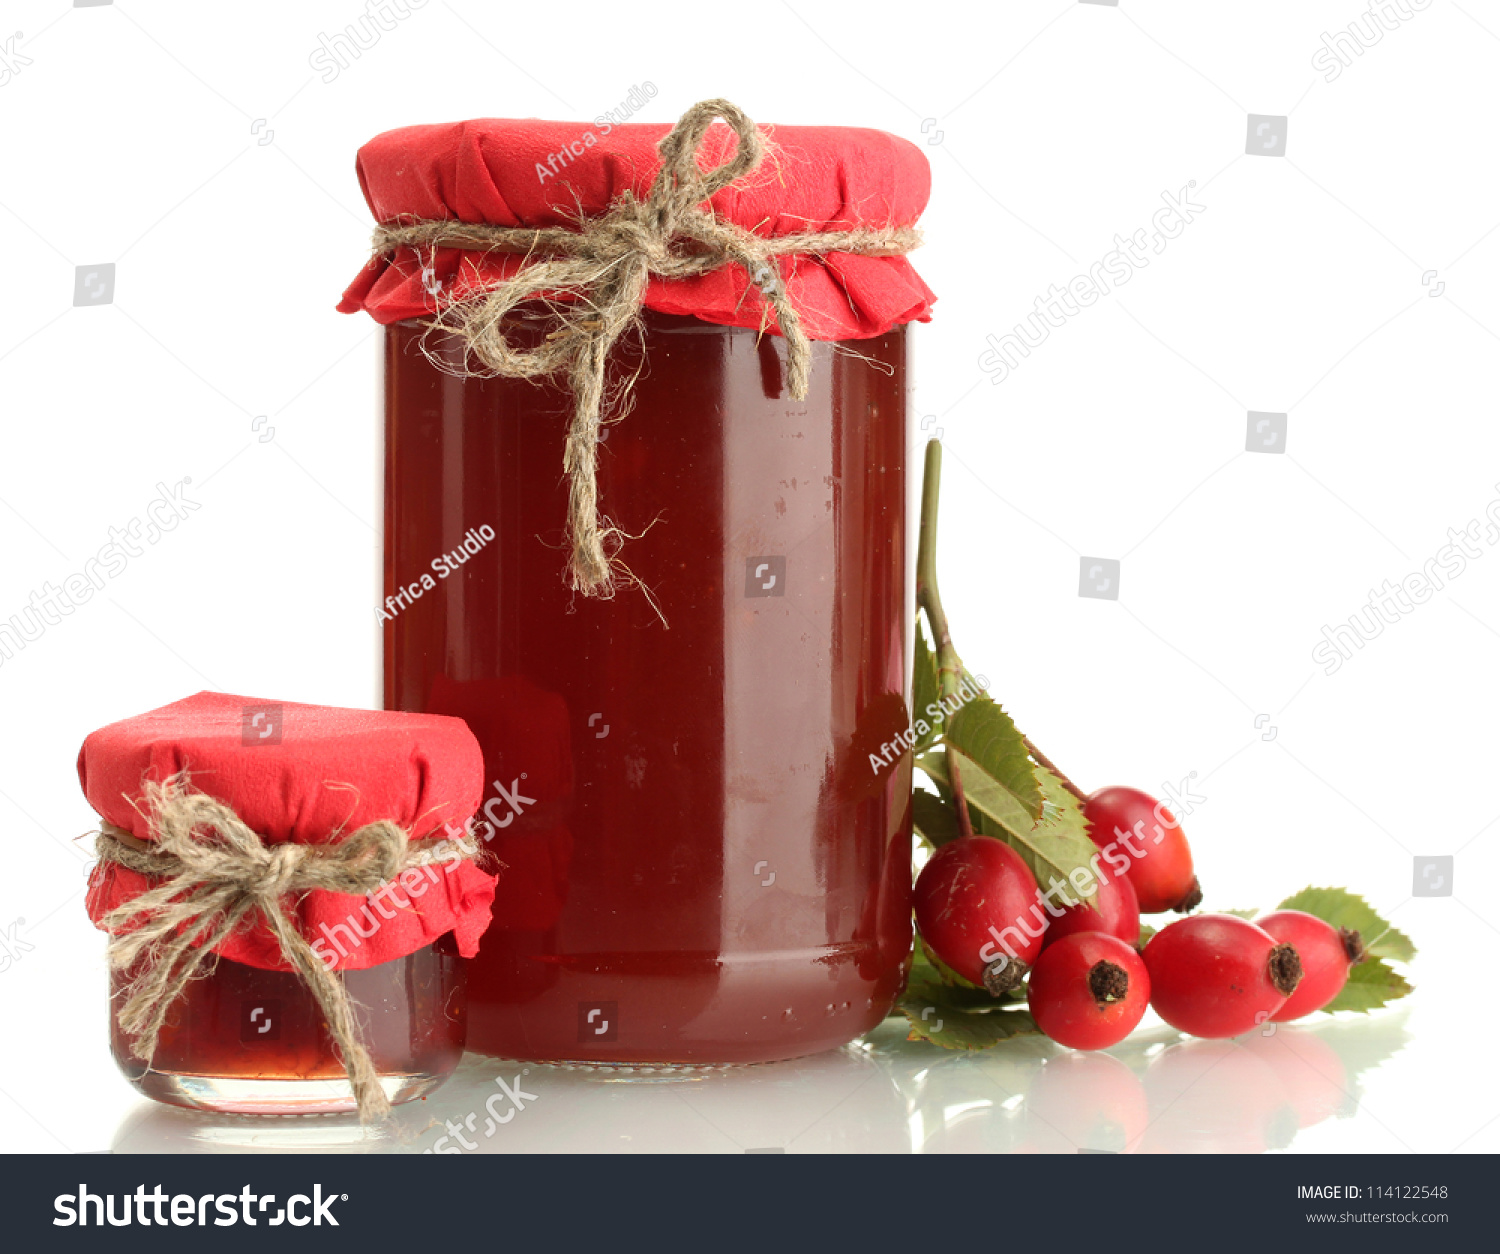 Jars with hip roses jam and ripe berries isolated on white stock photo 114122548 shutterstock - What to do with rosehips jelly and vinegar ...